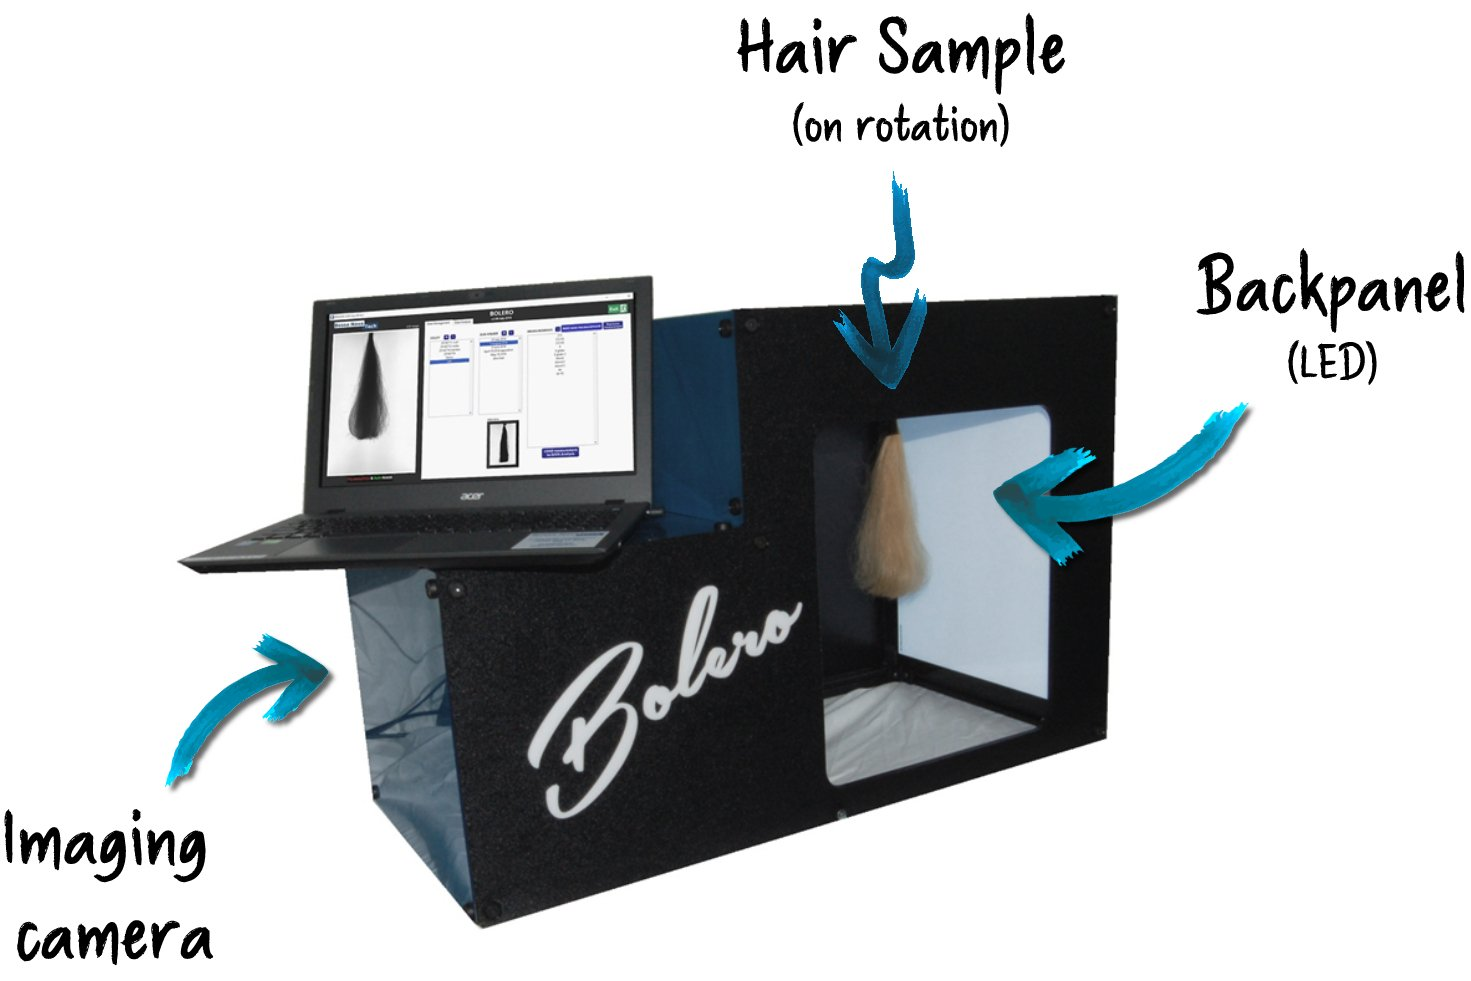 Bolero Volume frizz hair care claims bulk fly-away full rotation transmission calibration logo 3d easy 360 degrees full system